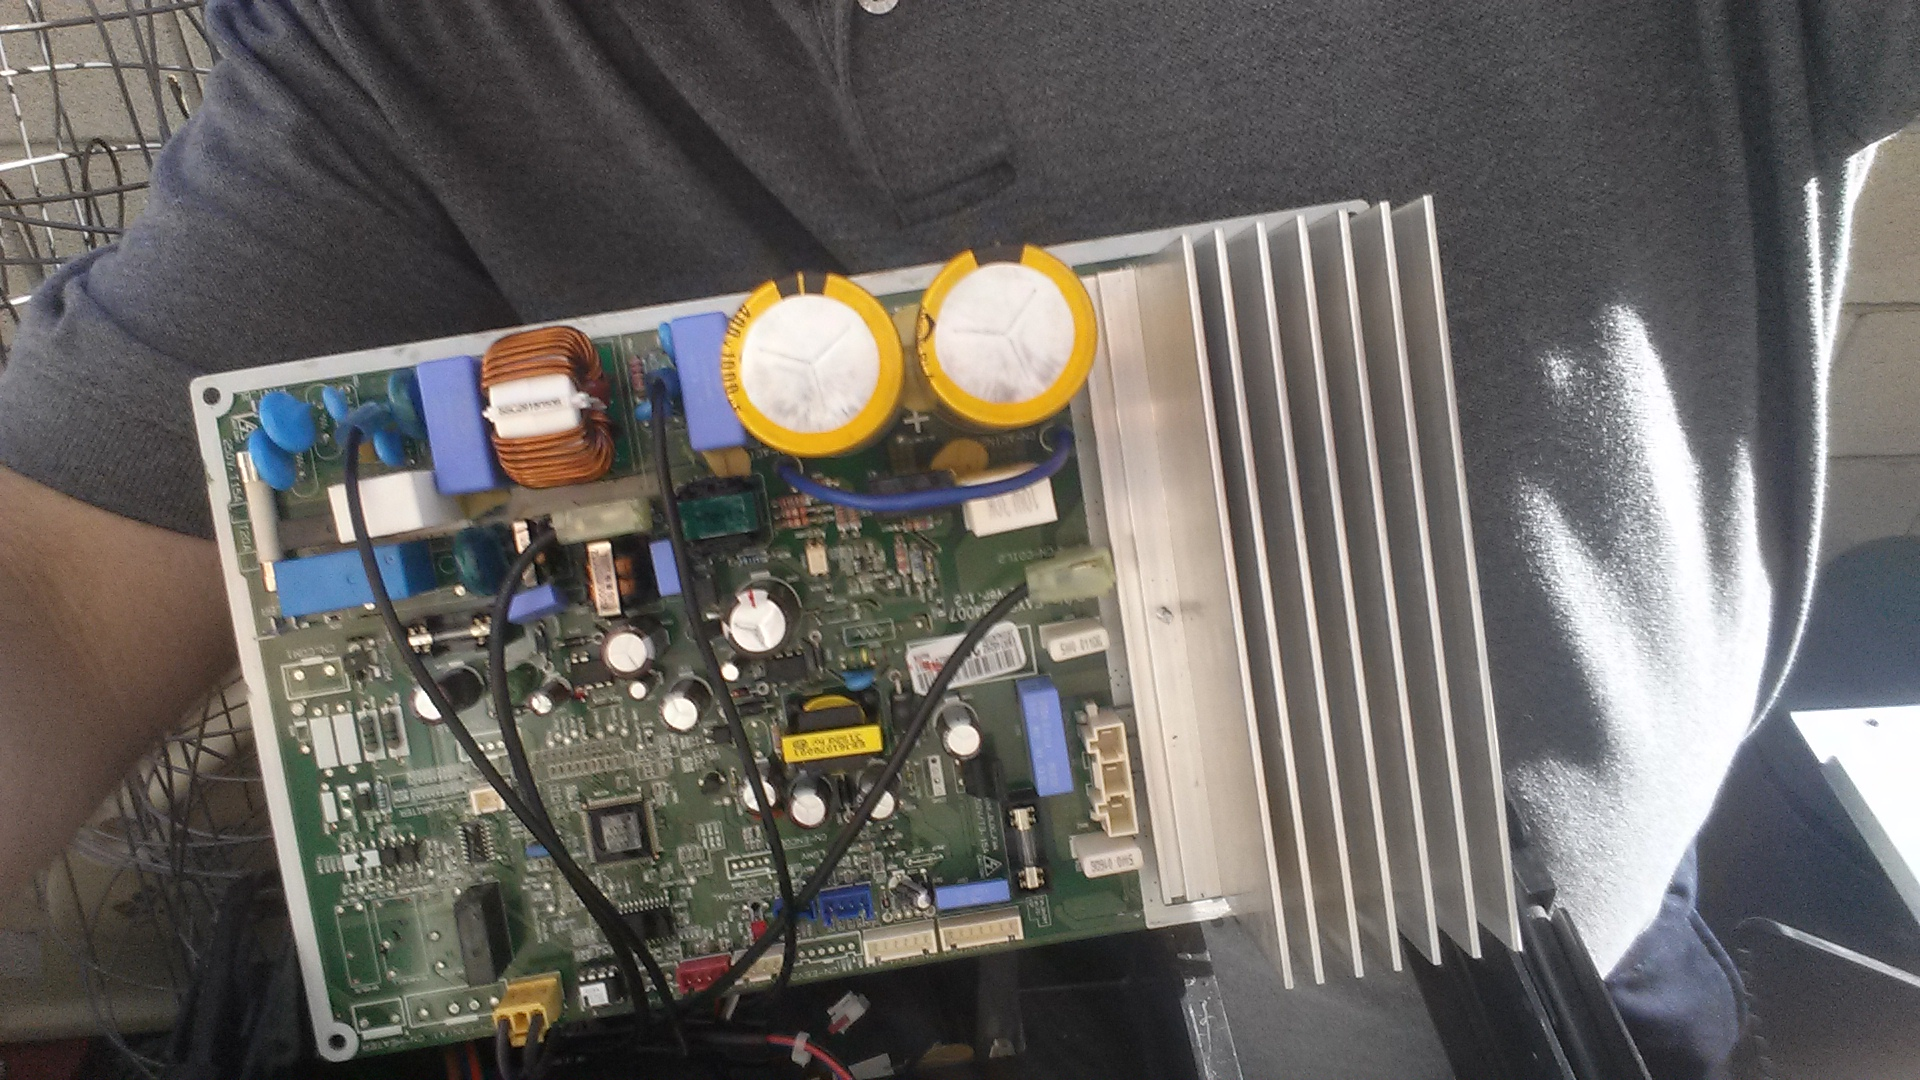 I have a LSN240HEV that is flashing 5 times for cooling and none for